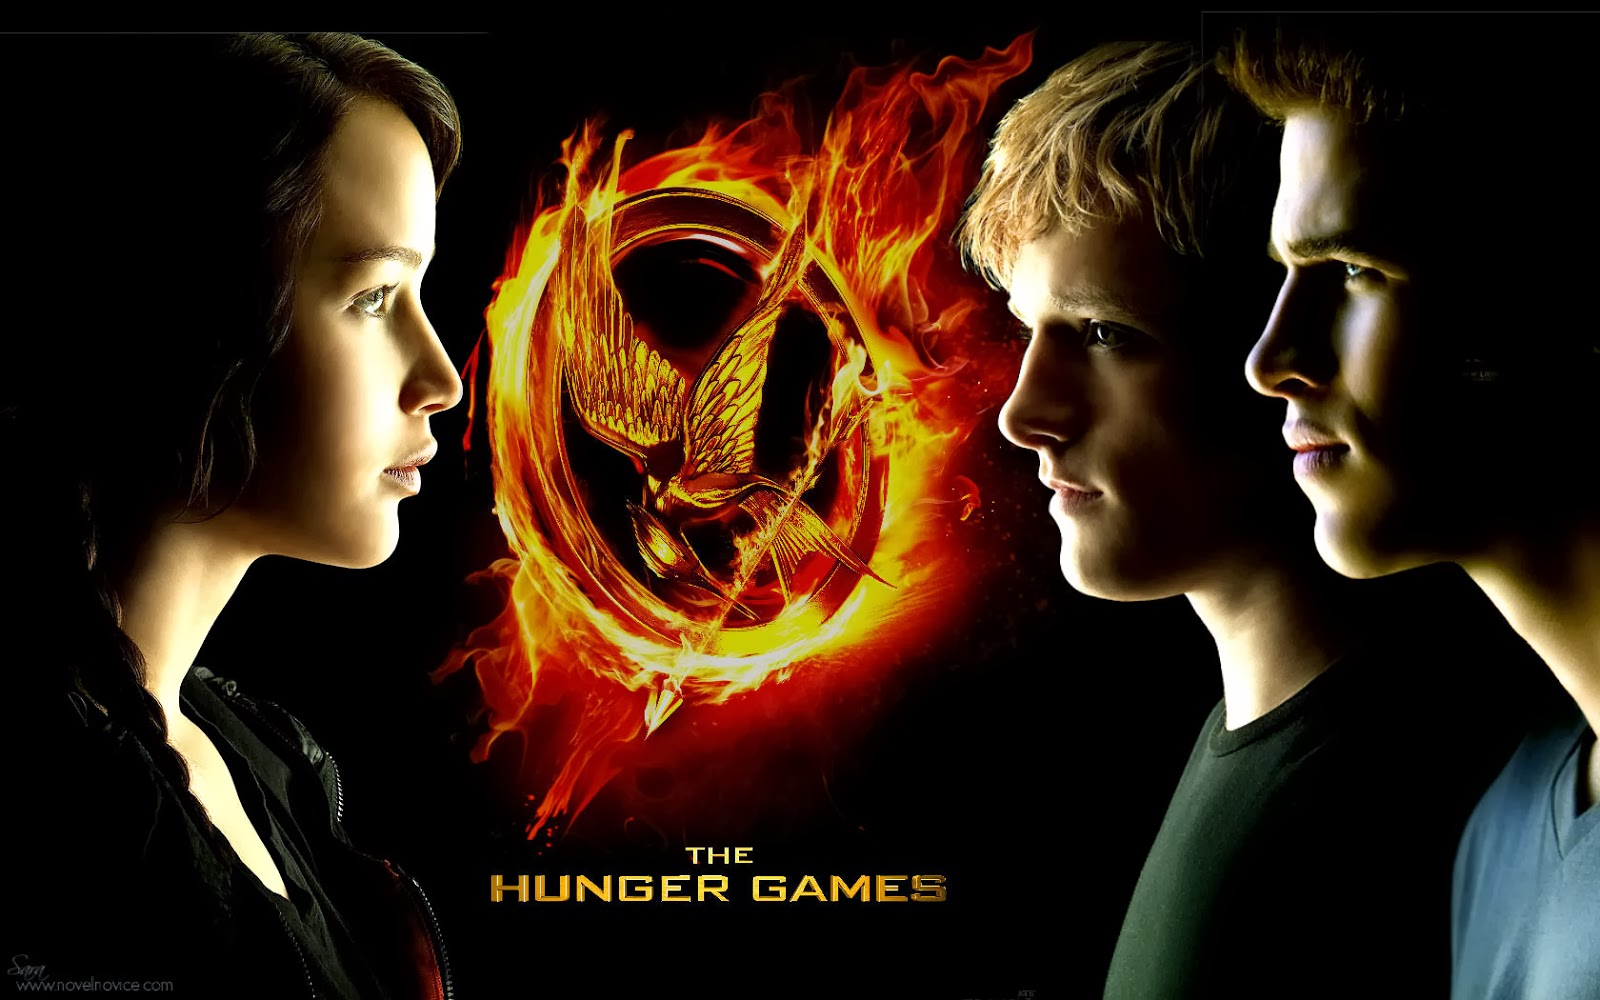 watch online the hunger games 1080p,watch online,online the hunger games 1080p,watch online the hunger games ,the hunger games ,watch the hunger games